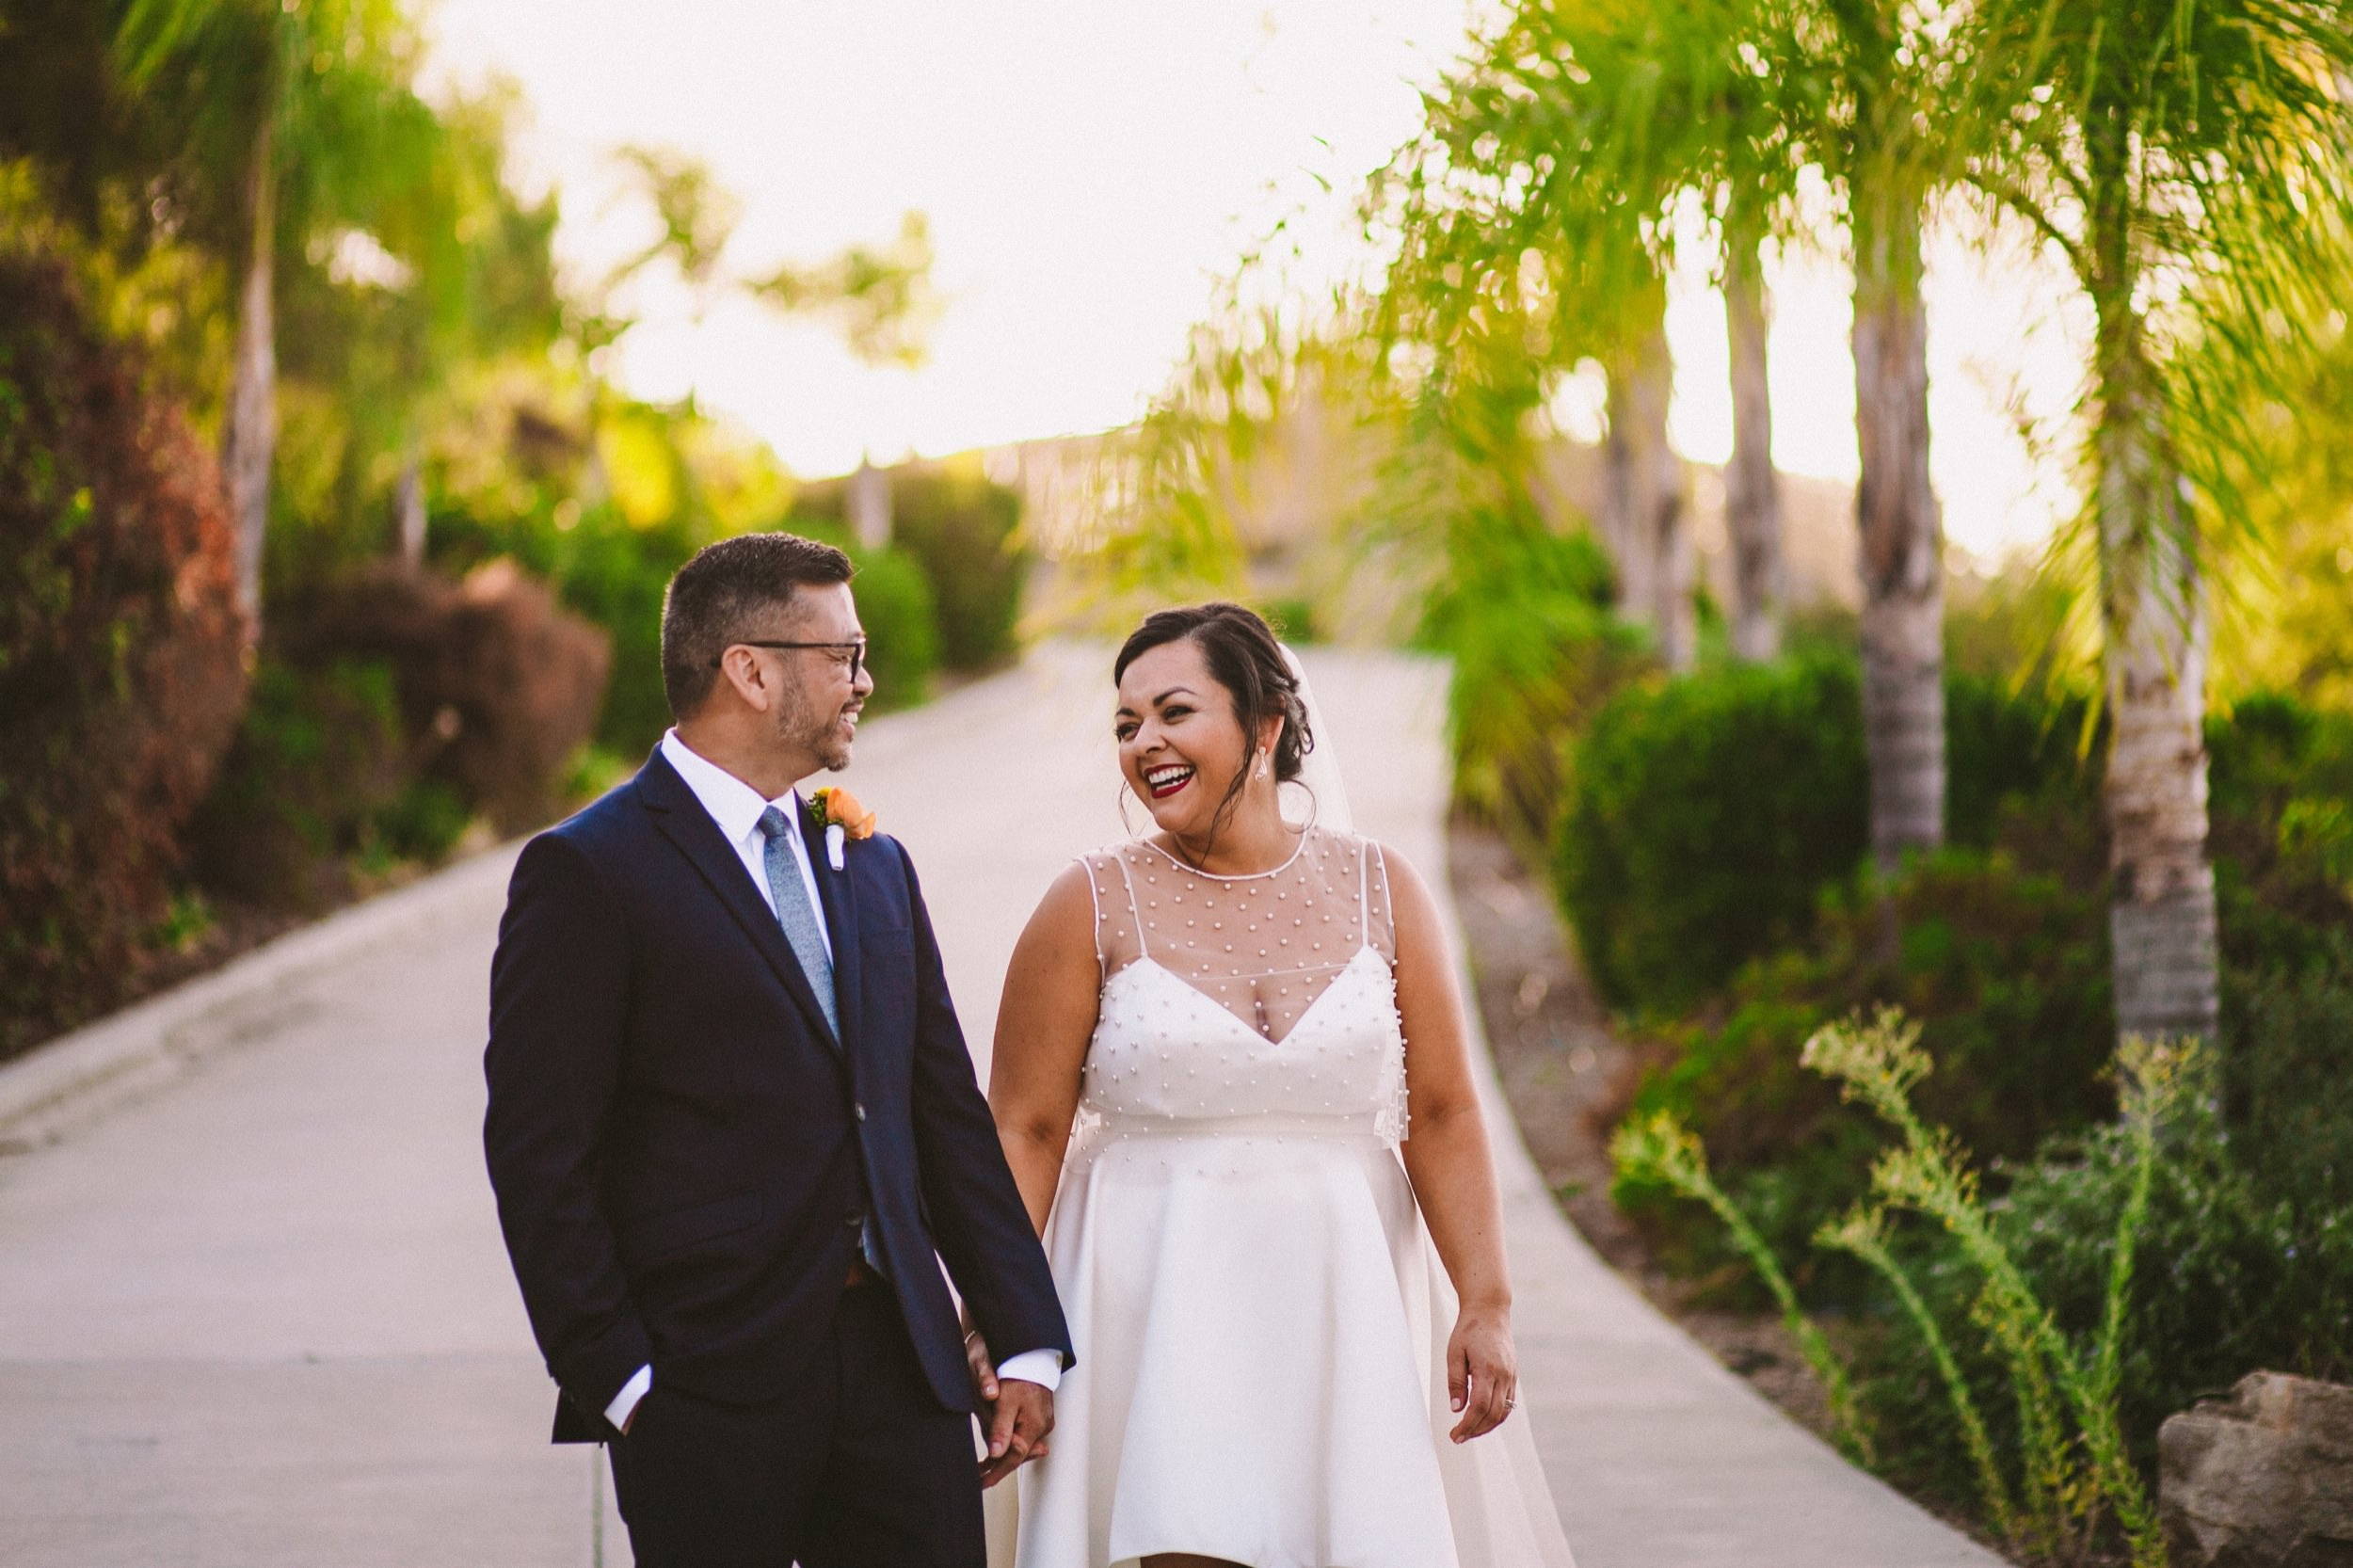 Intimate & colorful Temecula Documentary Wedding Photography-78.jpg